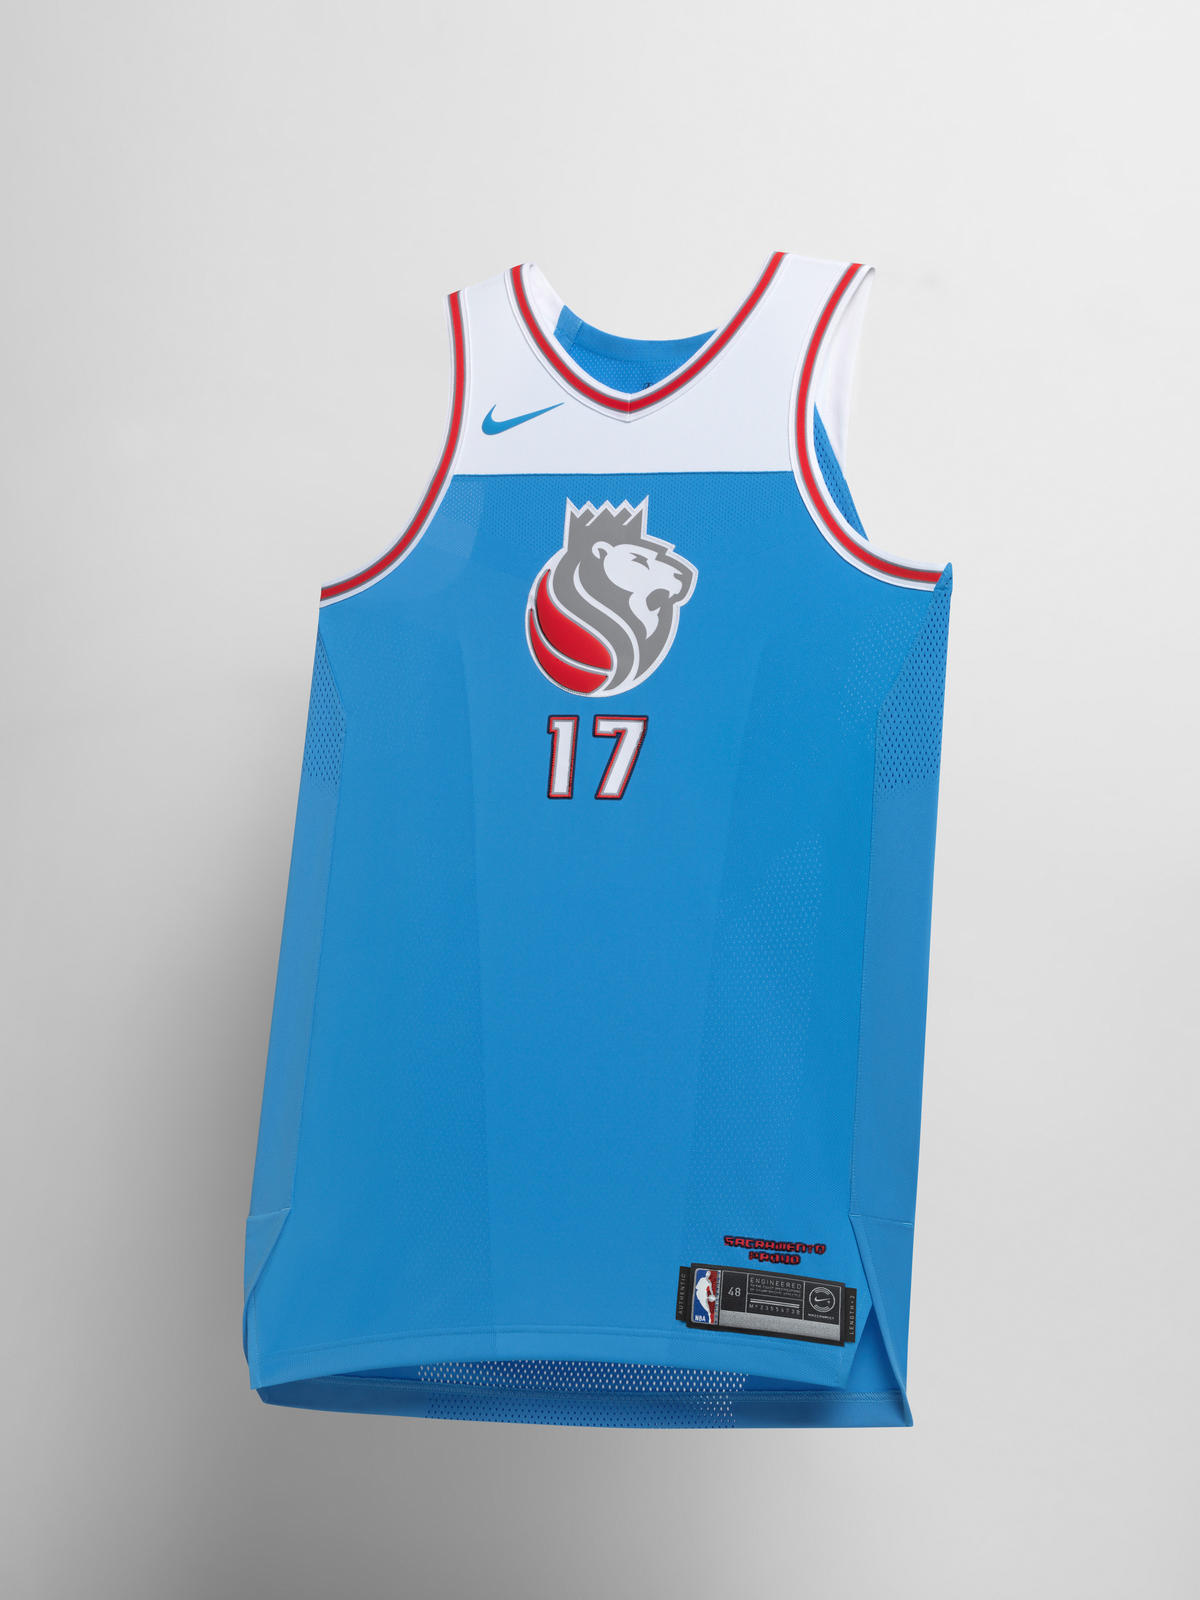 News Edition Nba City Uniform Nike qMSVpzU